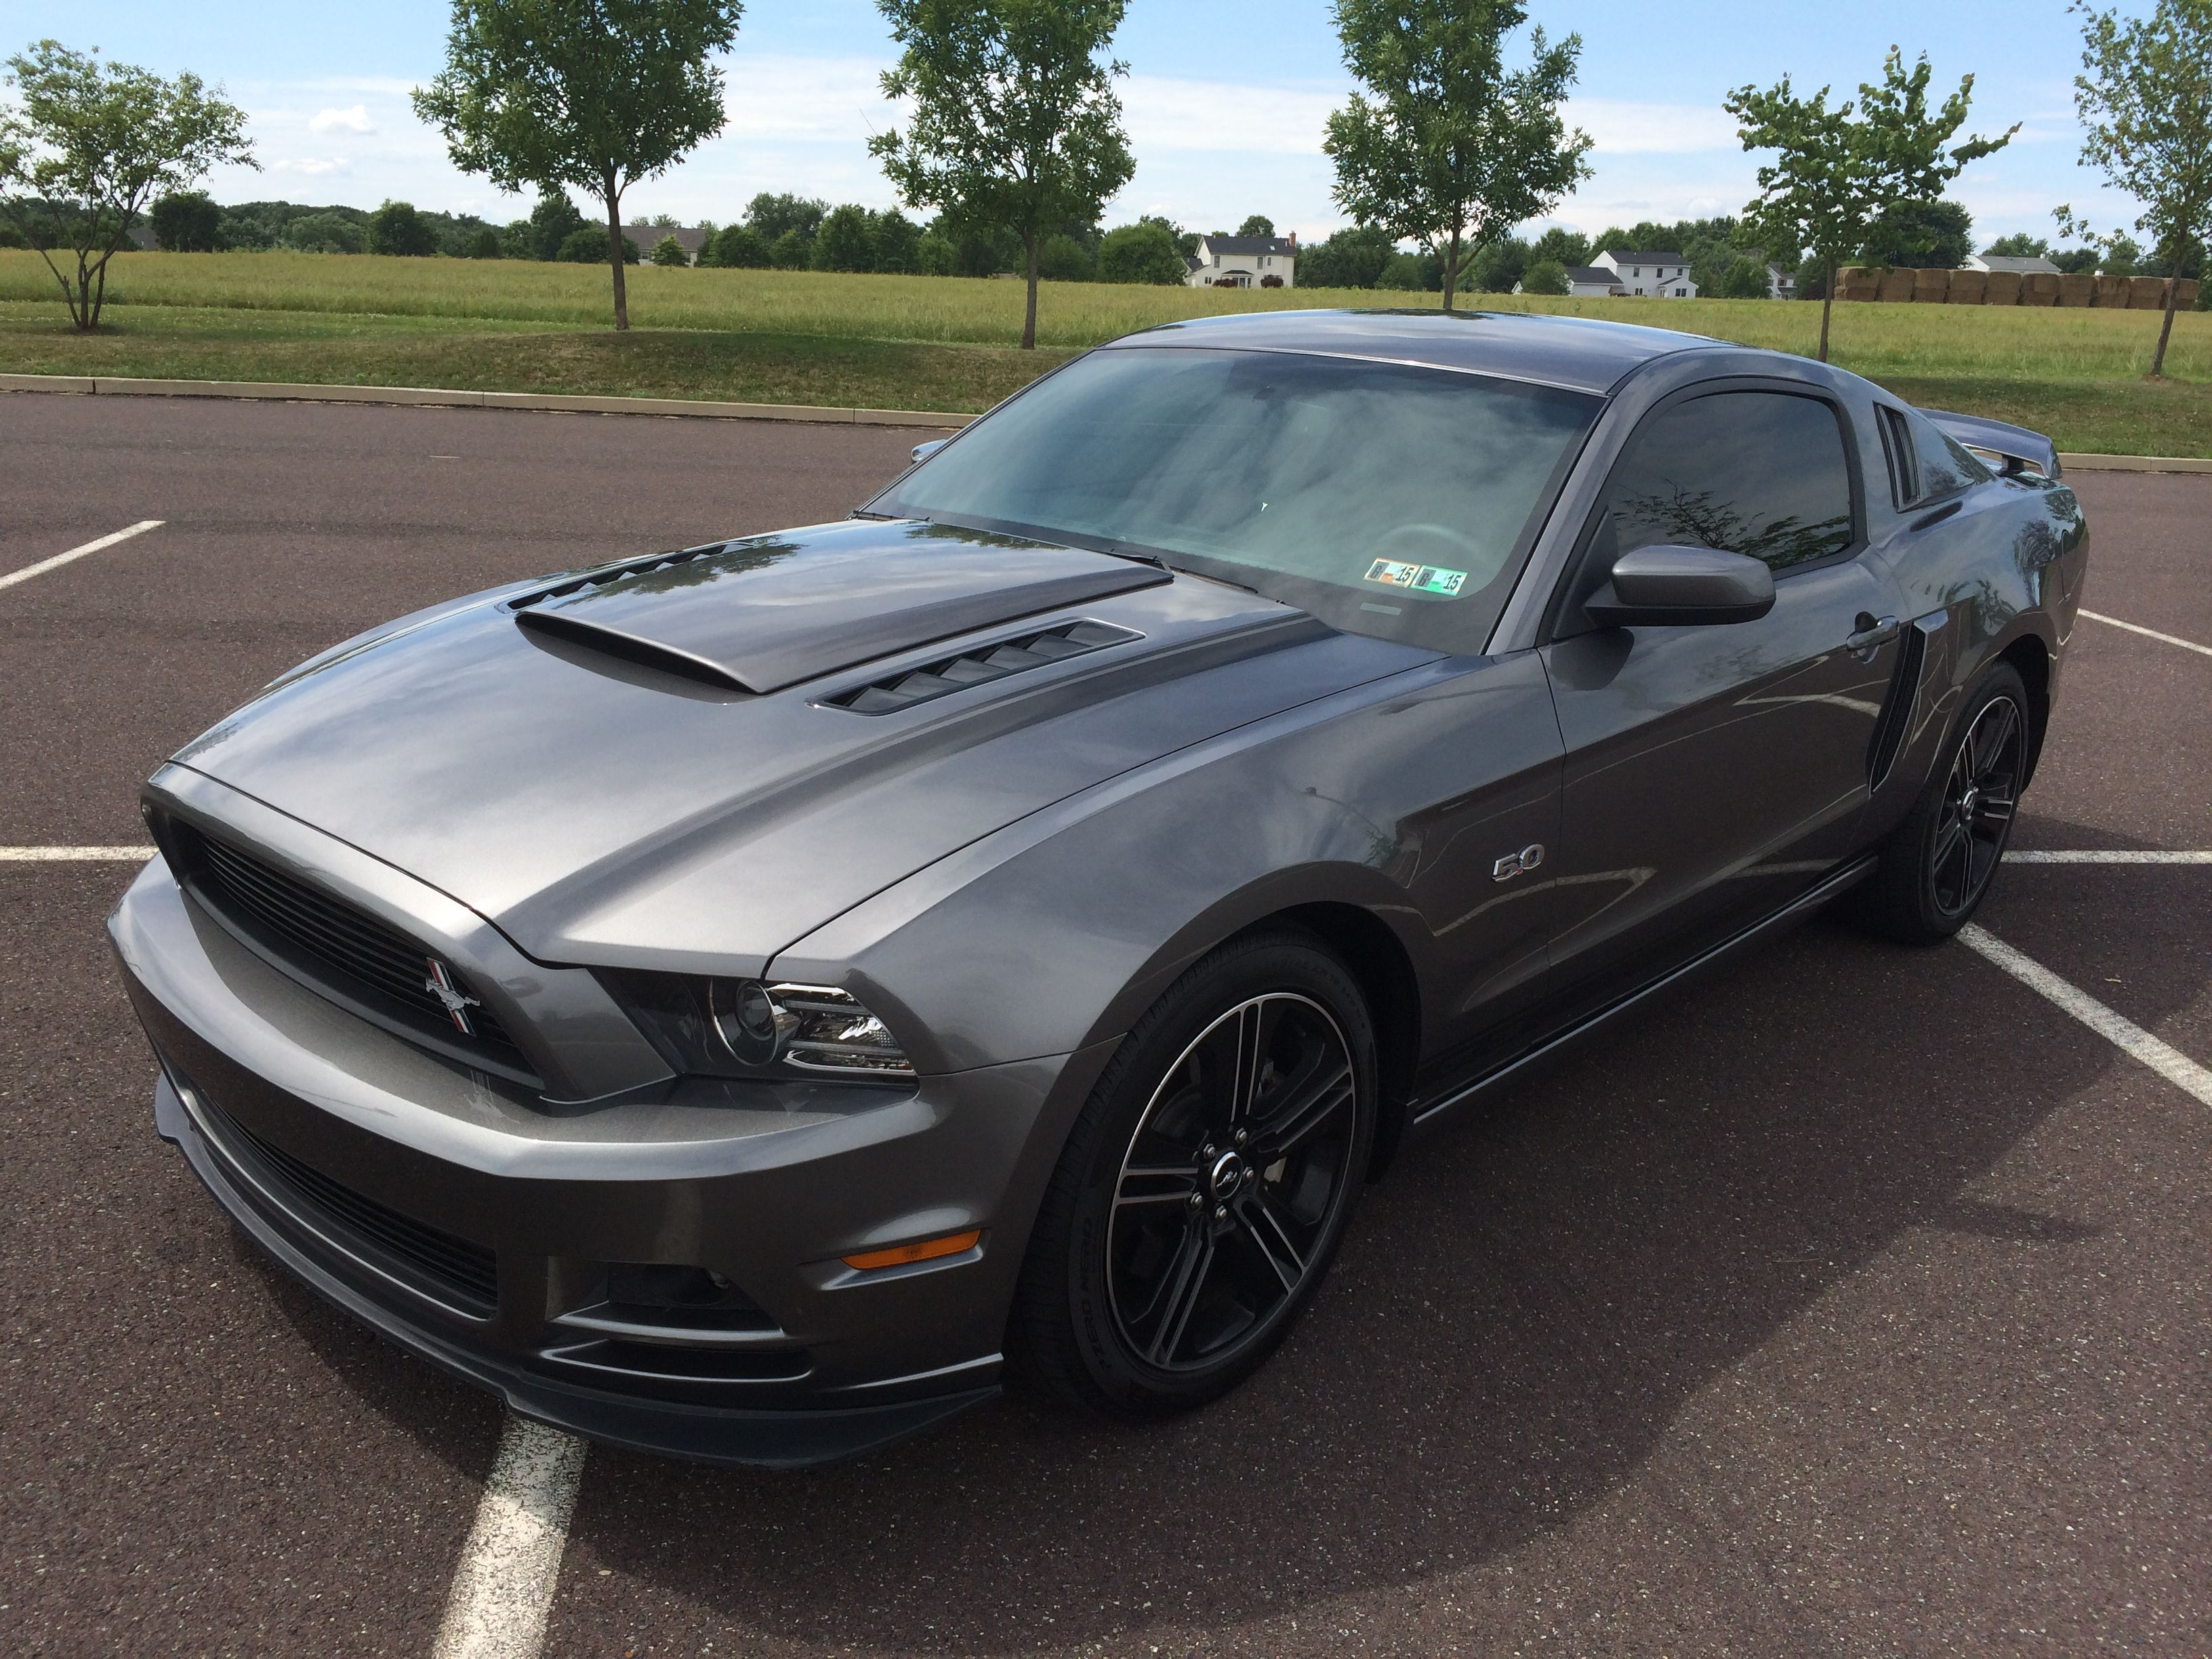 2014 Mustang Gt California Special With Rousch Hood Scoop Side